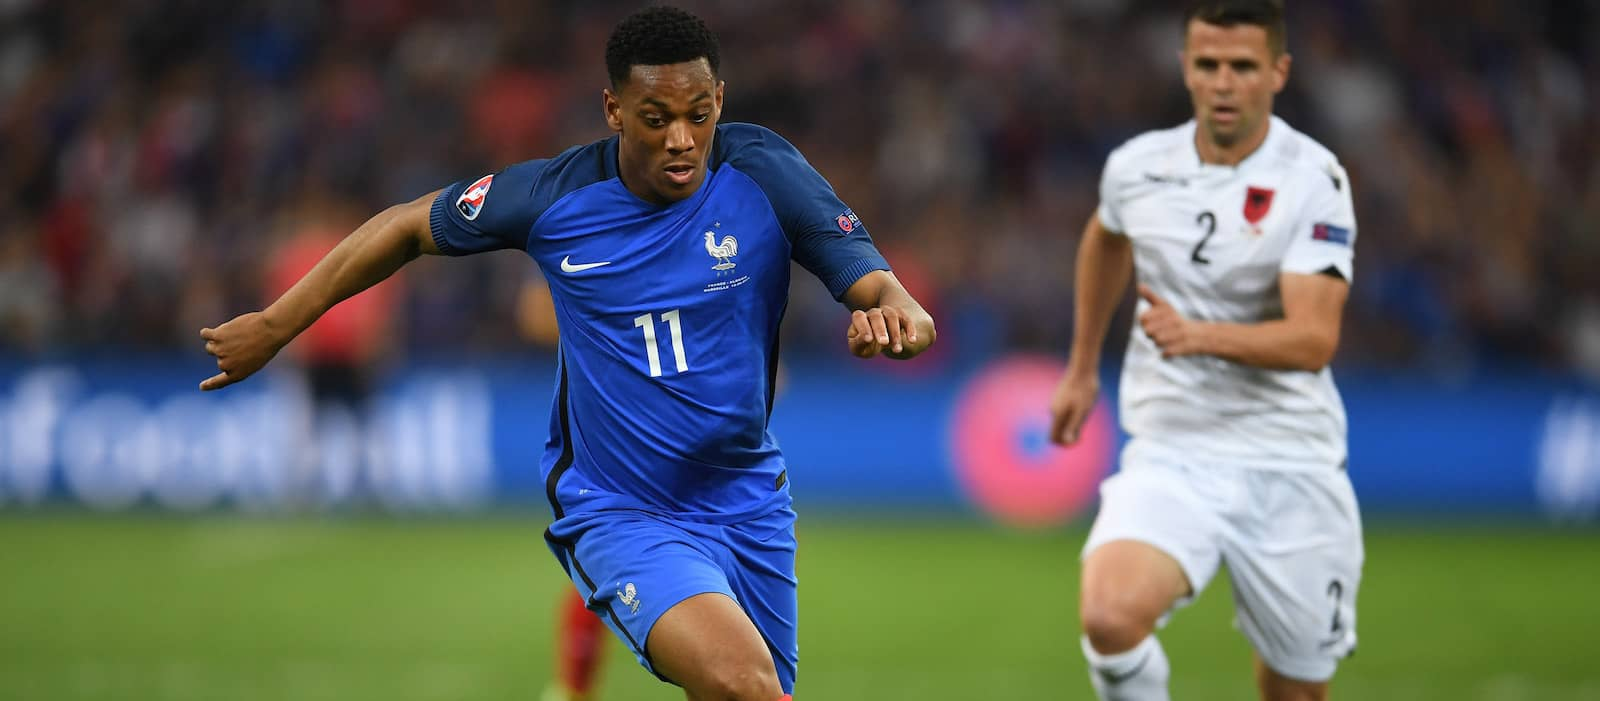 Video: Anthony Martial goal, France 1-0 Italy